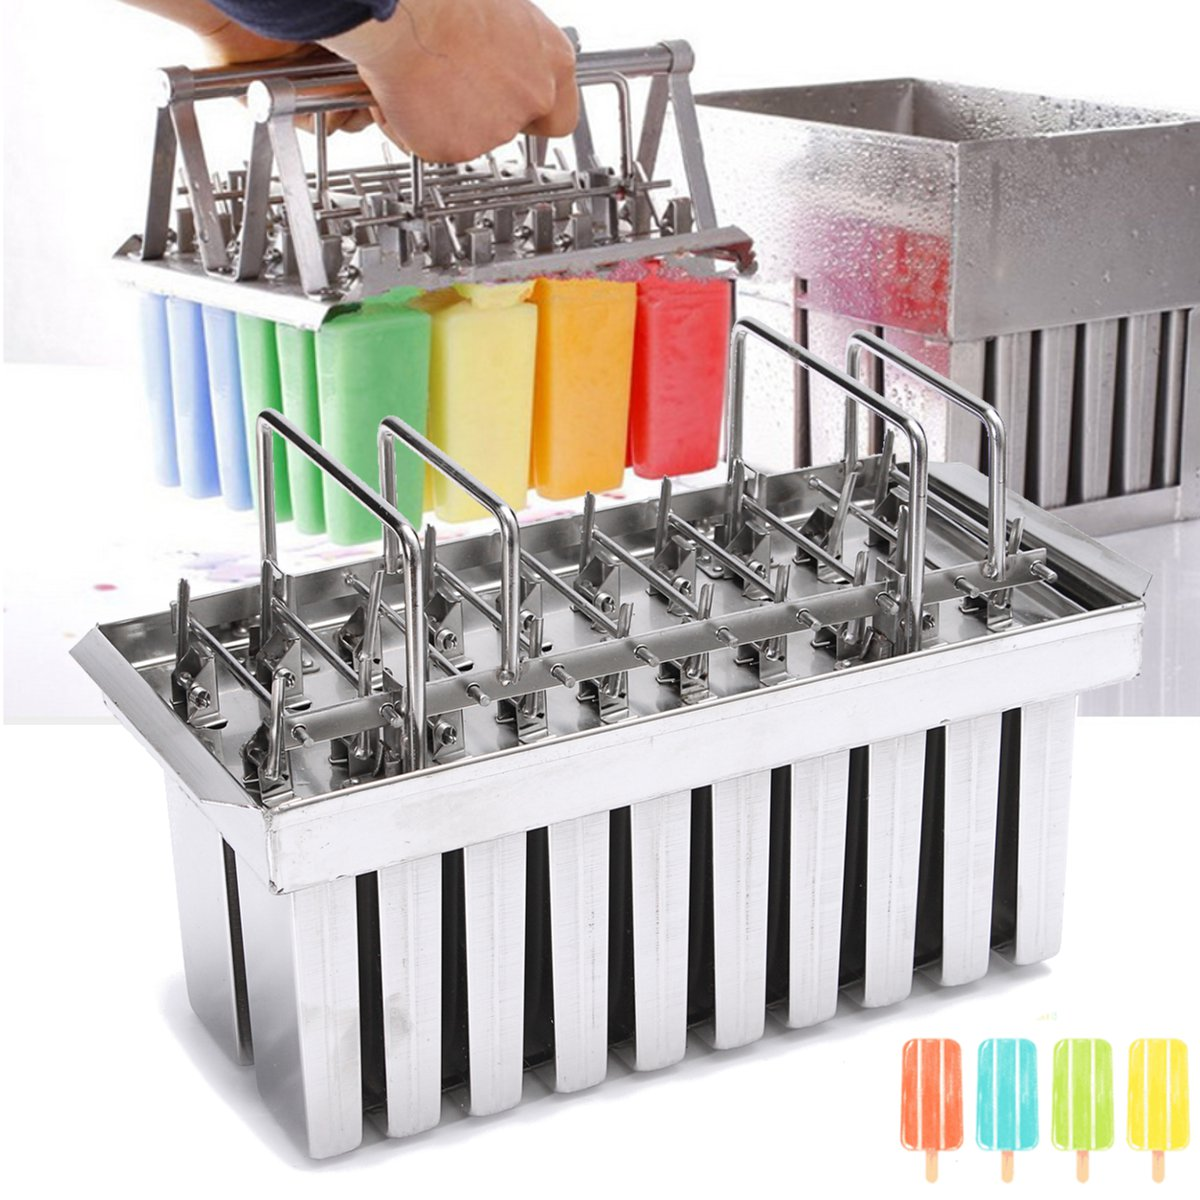 Stainless Steel Ice Pop Molds Machine Ice Lolly 20Pcs Popsicles Mould Stick Holder Home Kitchen Shop Ice Cream Maker Large